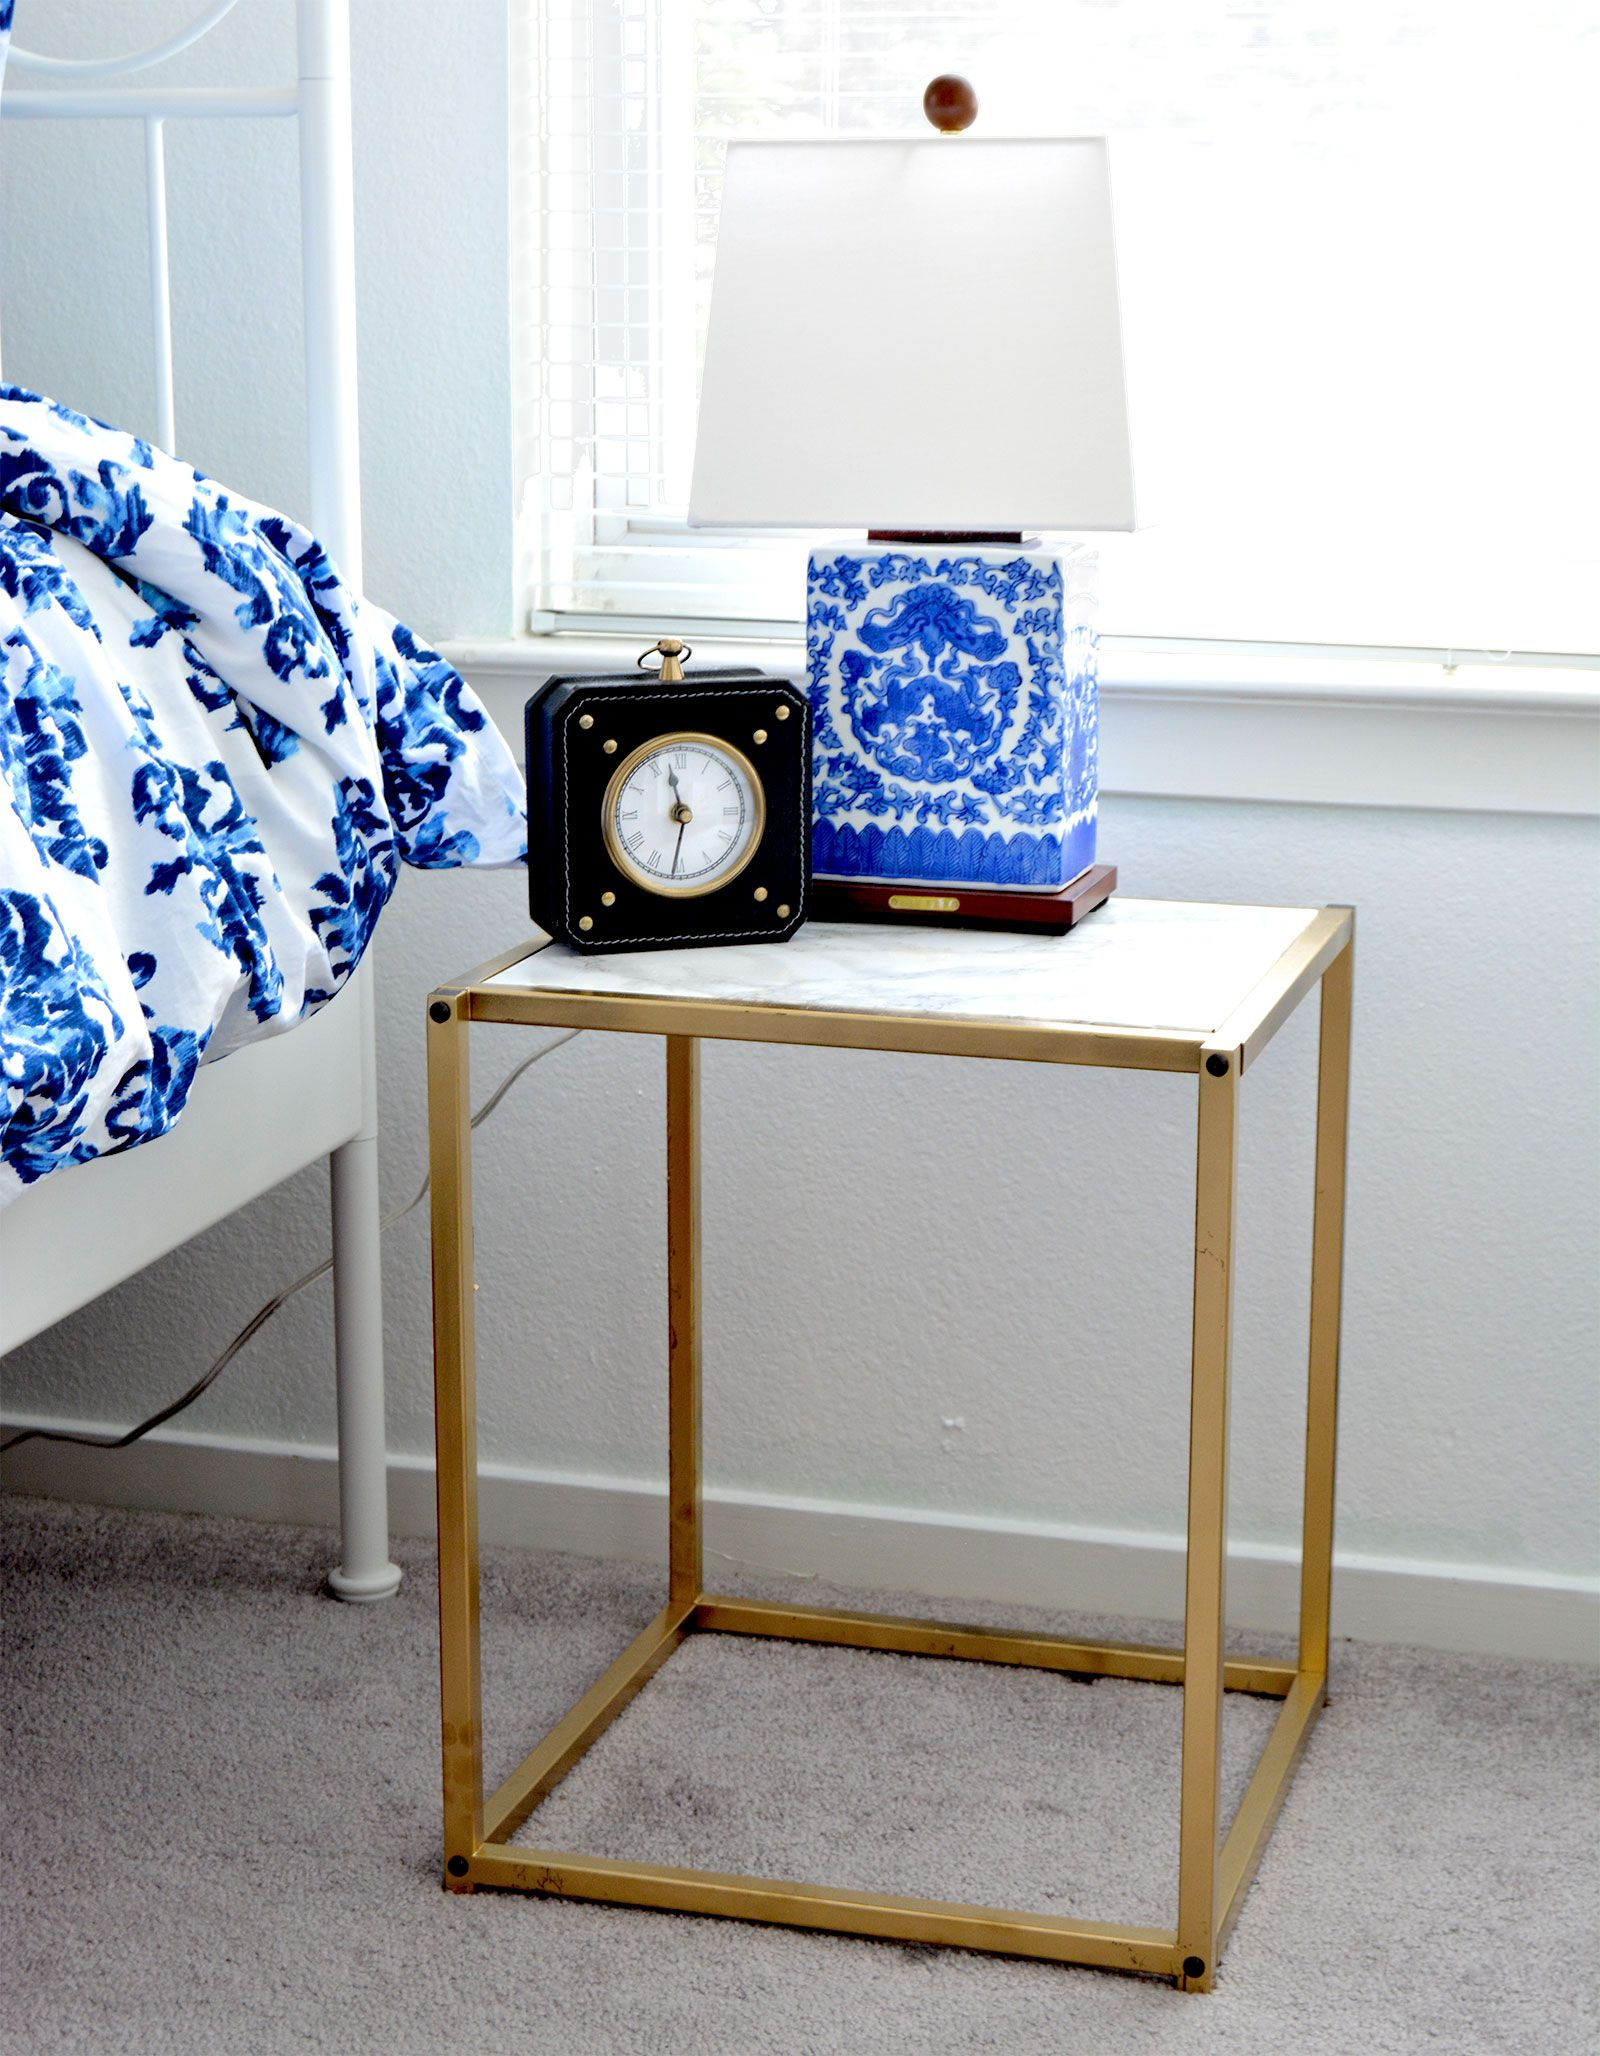 Diy Gold And Faux Marble Nightstand Marble Nightstand Decor Gold Nightstand